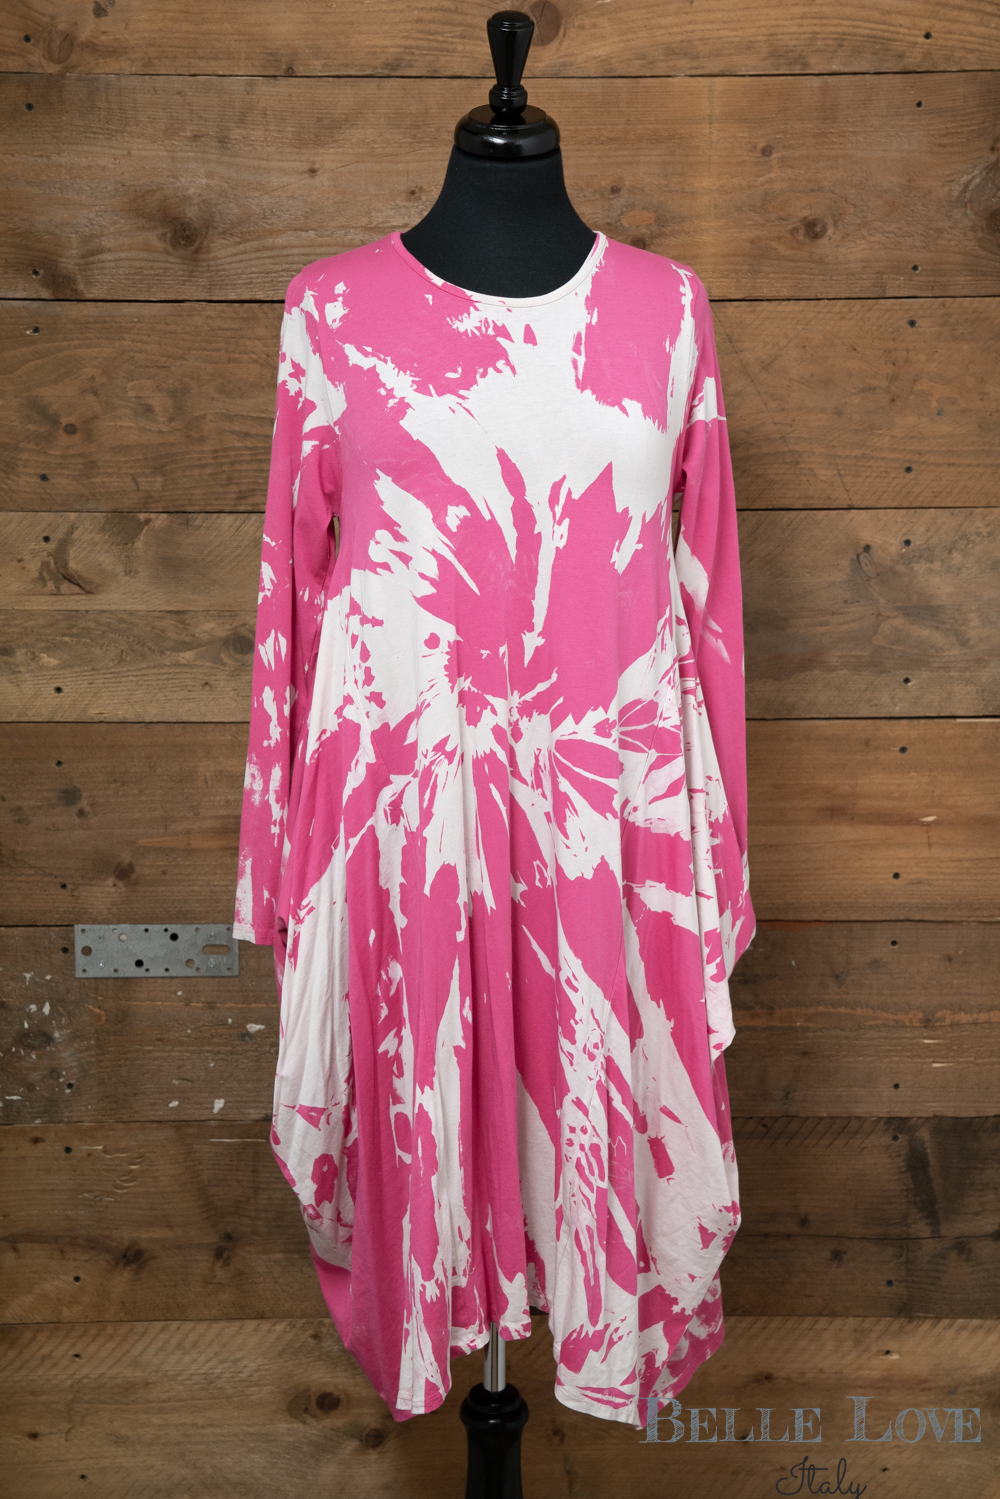 Belle Love Italy Tie-Dye Print Dress